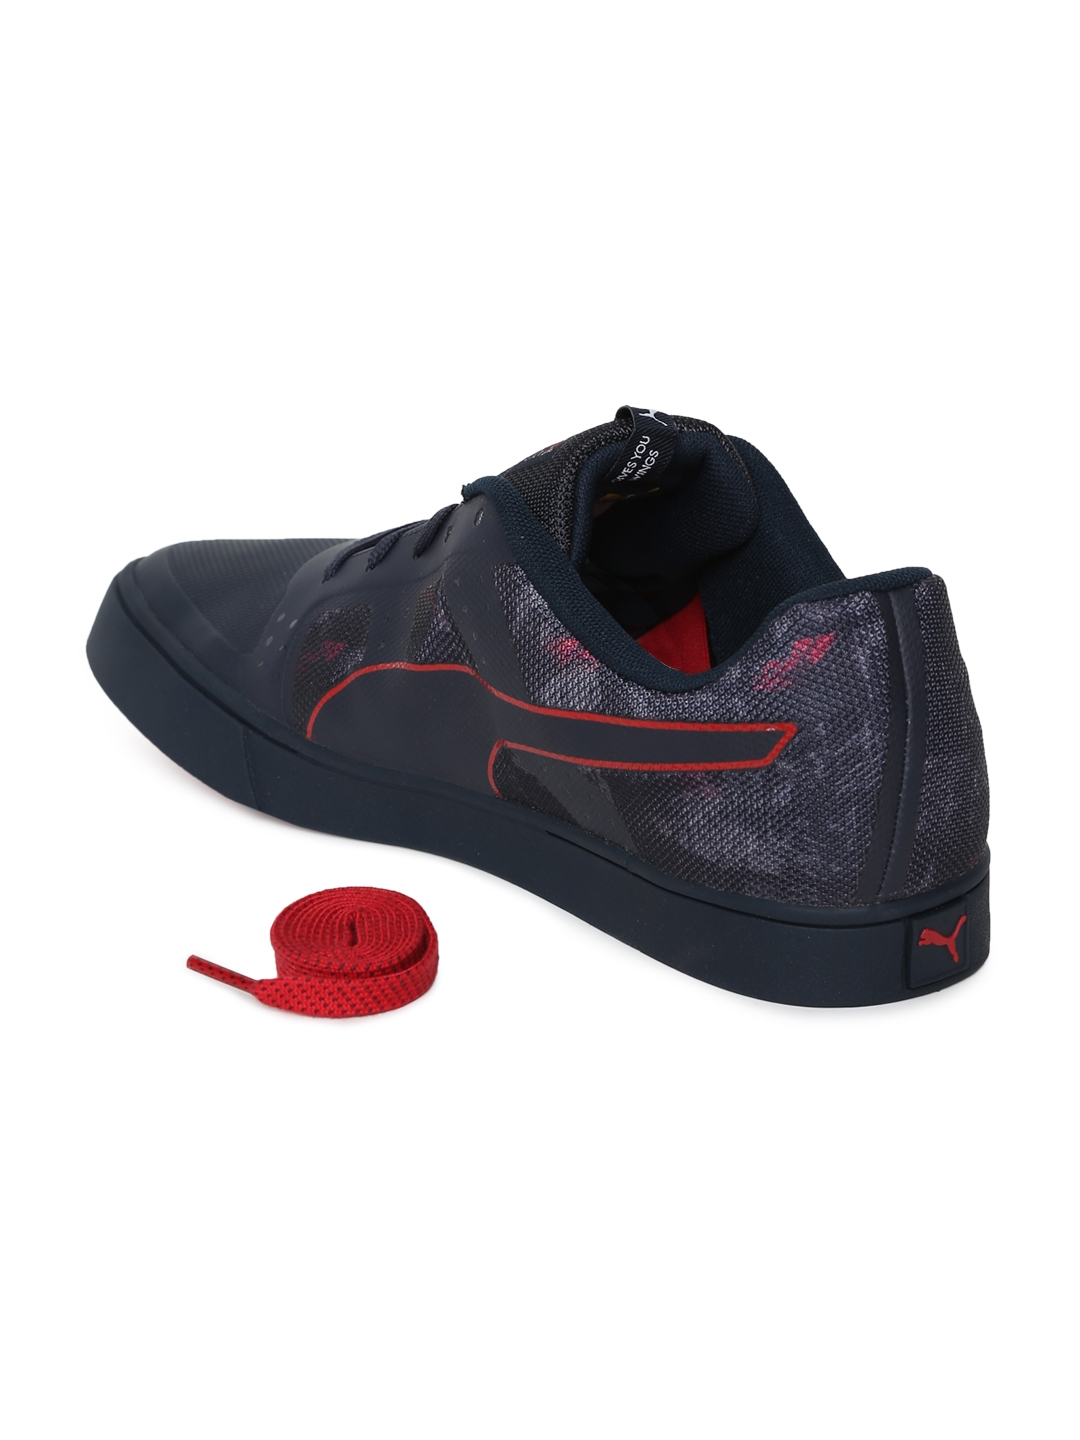 1f92c3a8630a Buy Puma Unisex Navy RBR Wings Vulc Team Sneakers - Casual Shoes for ...